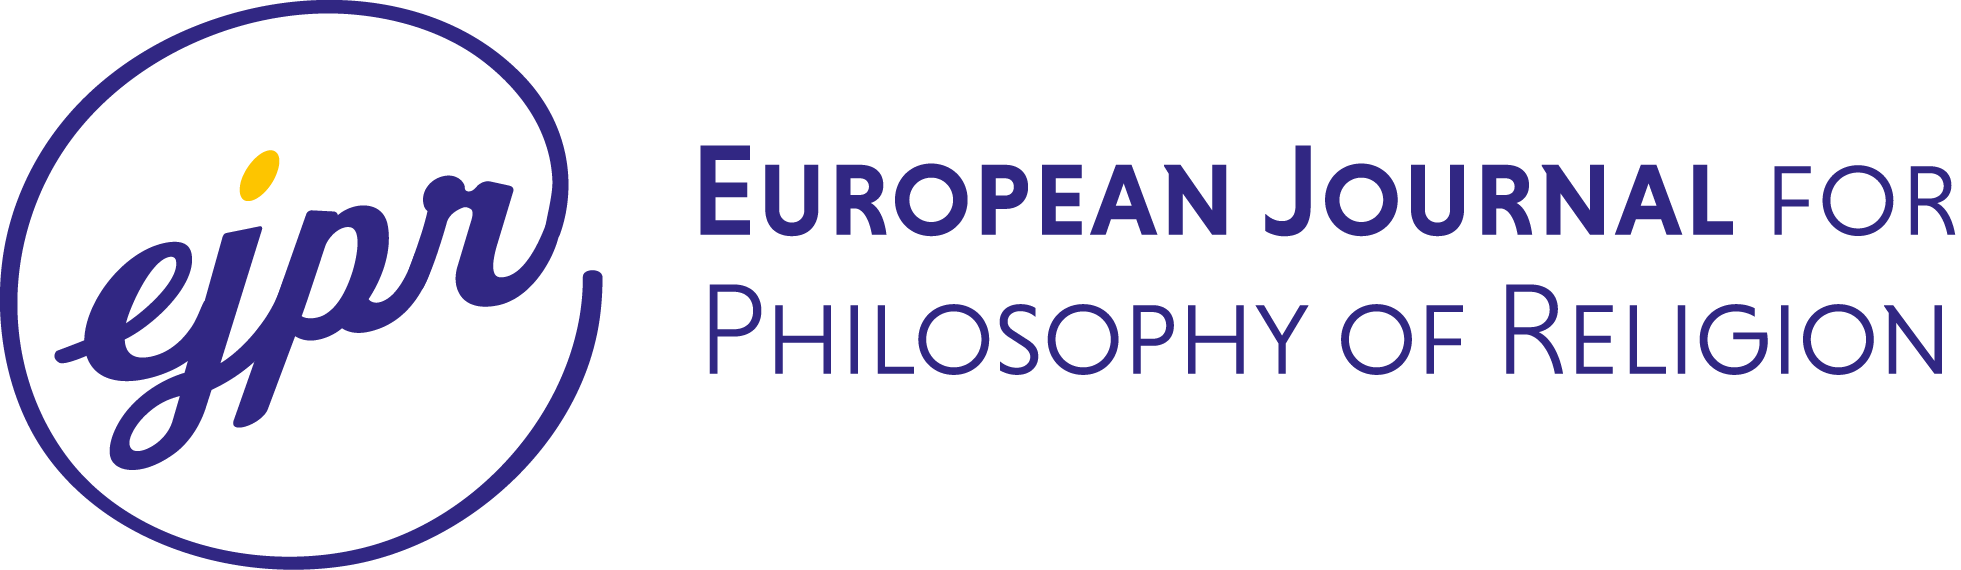 European Journal for Philosophy of Religion - Logo